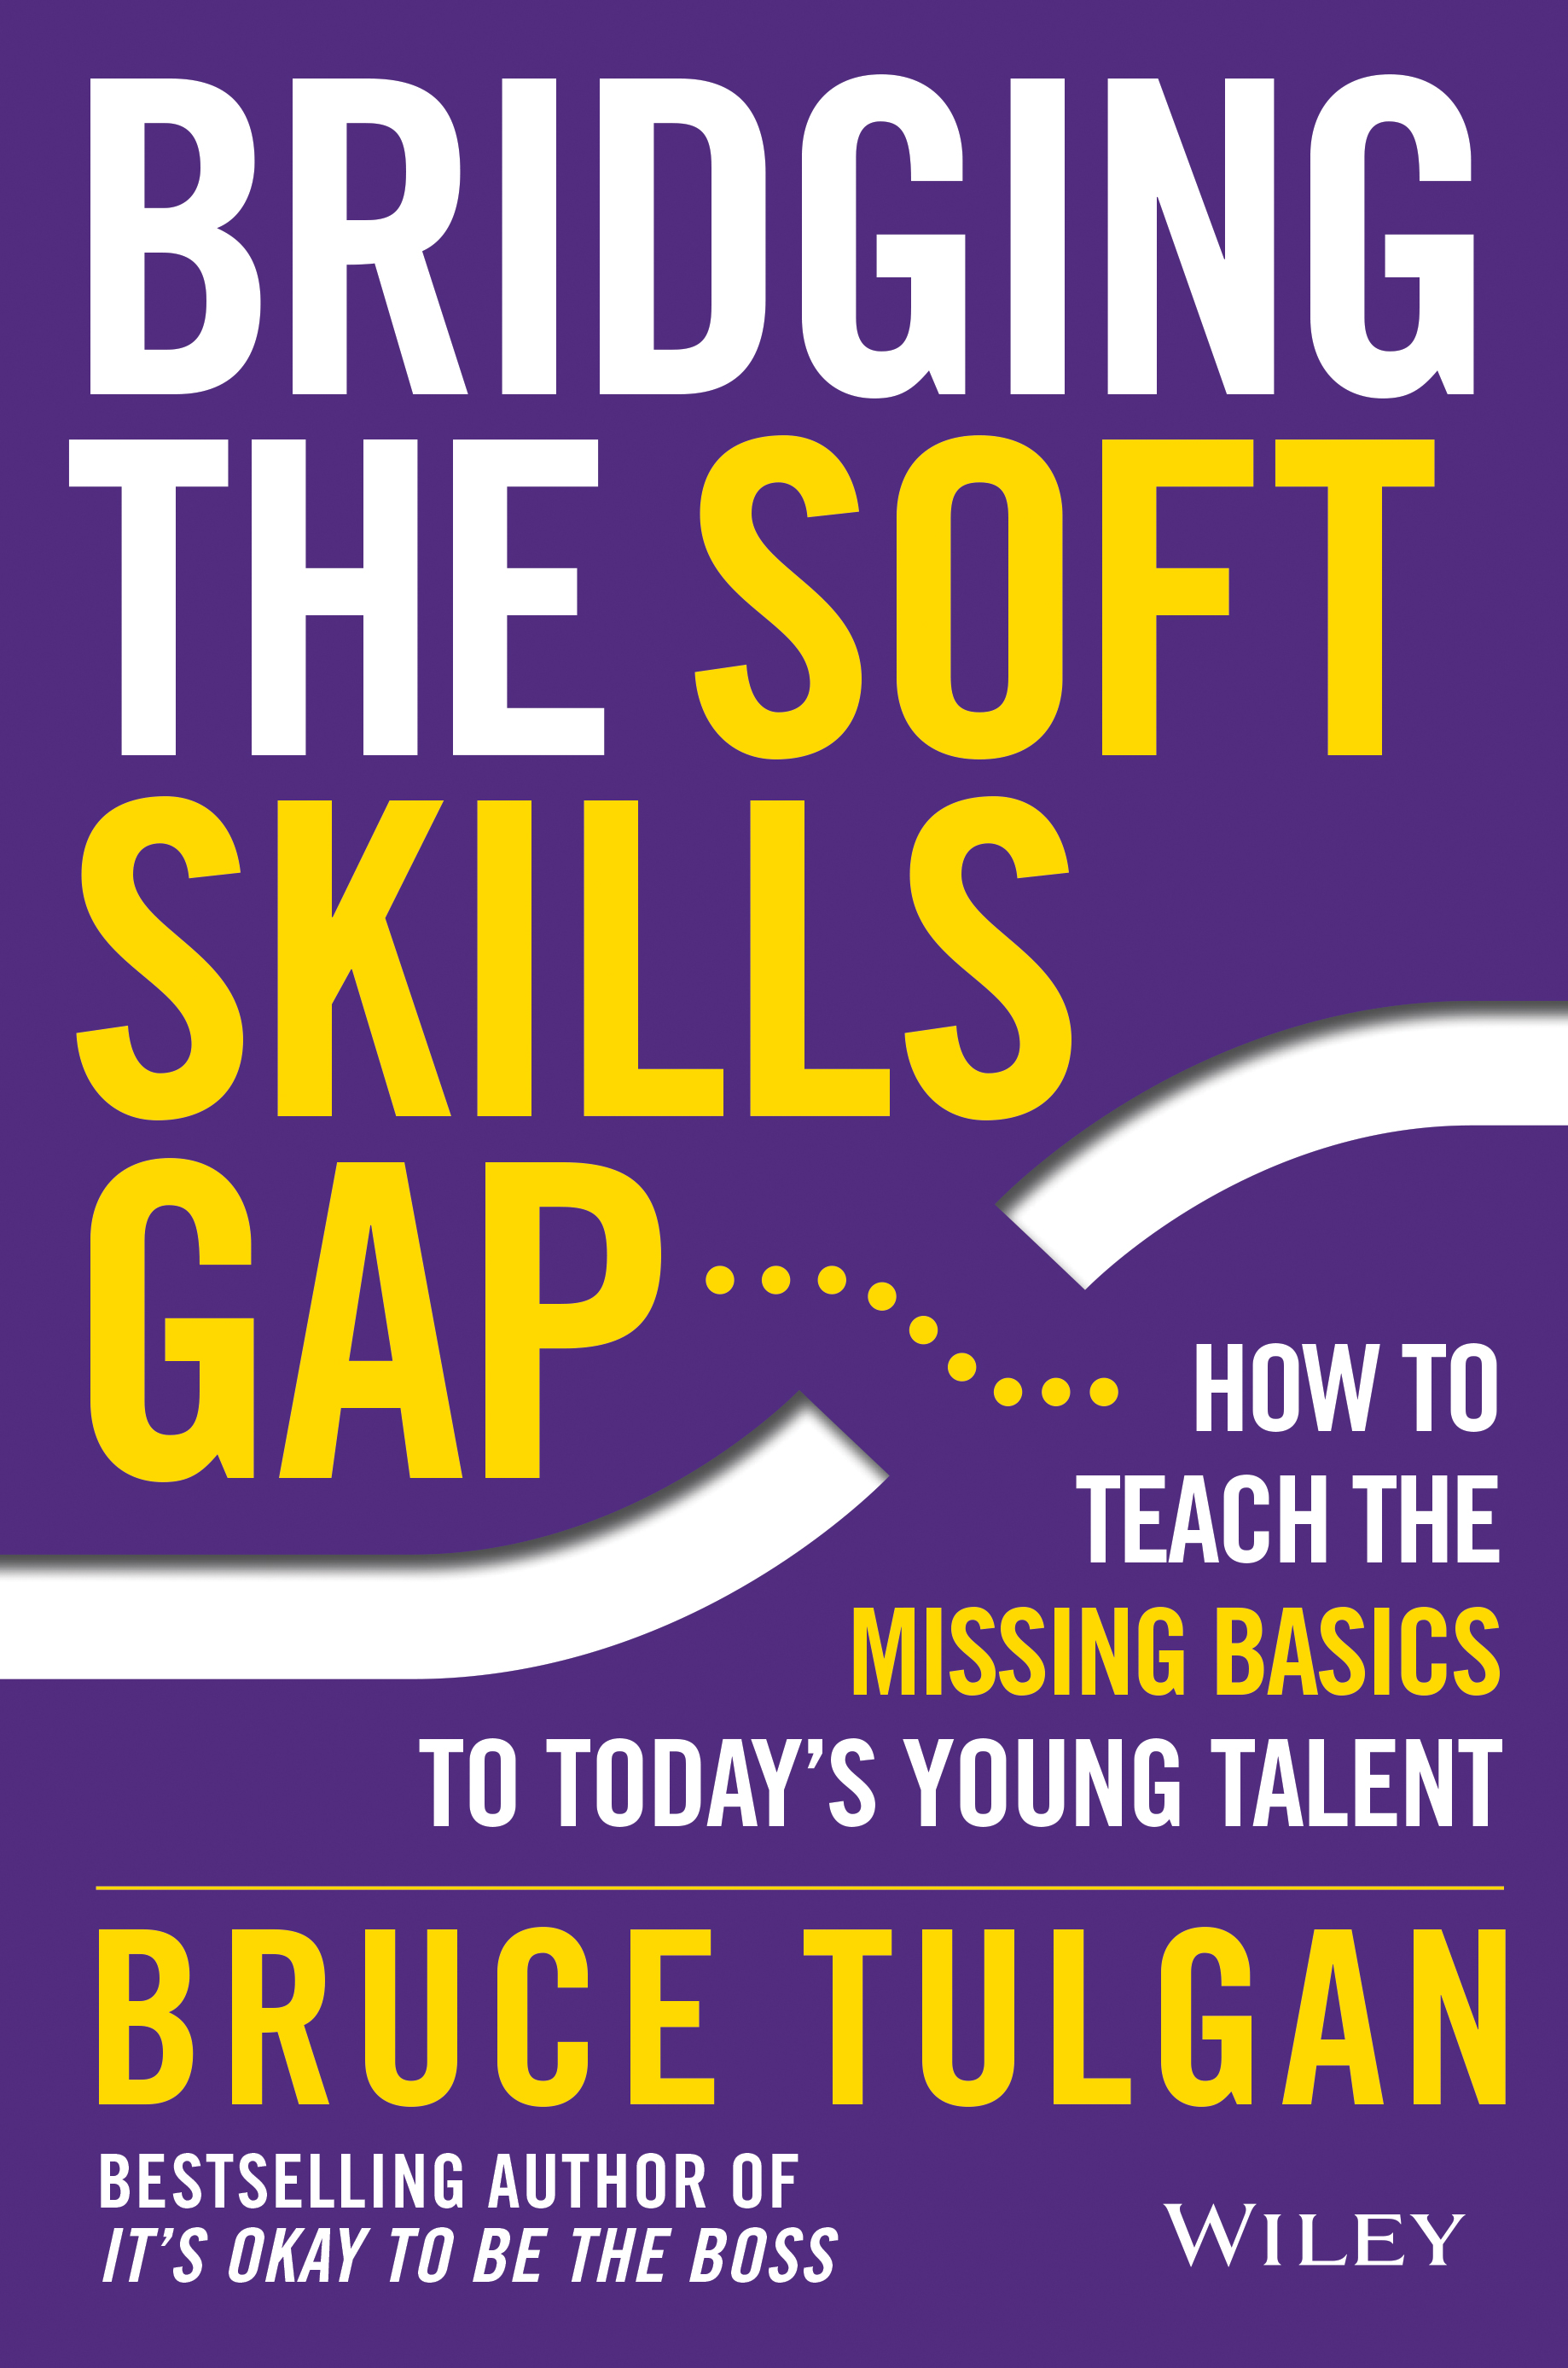 Bridging the Soft Skills Gap -- Cover